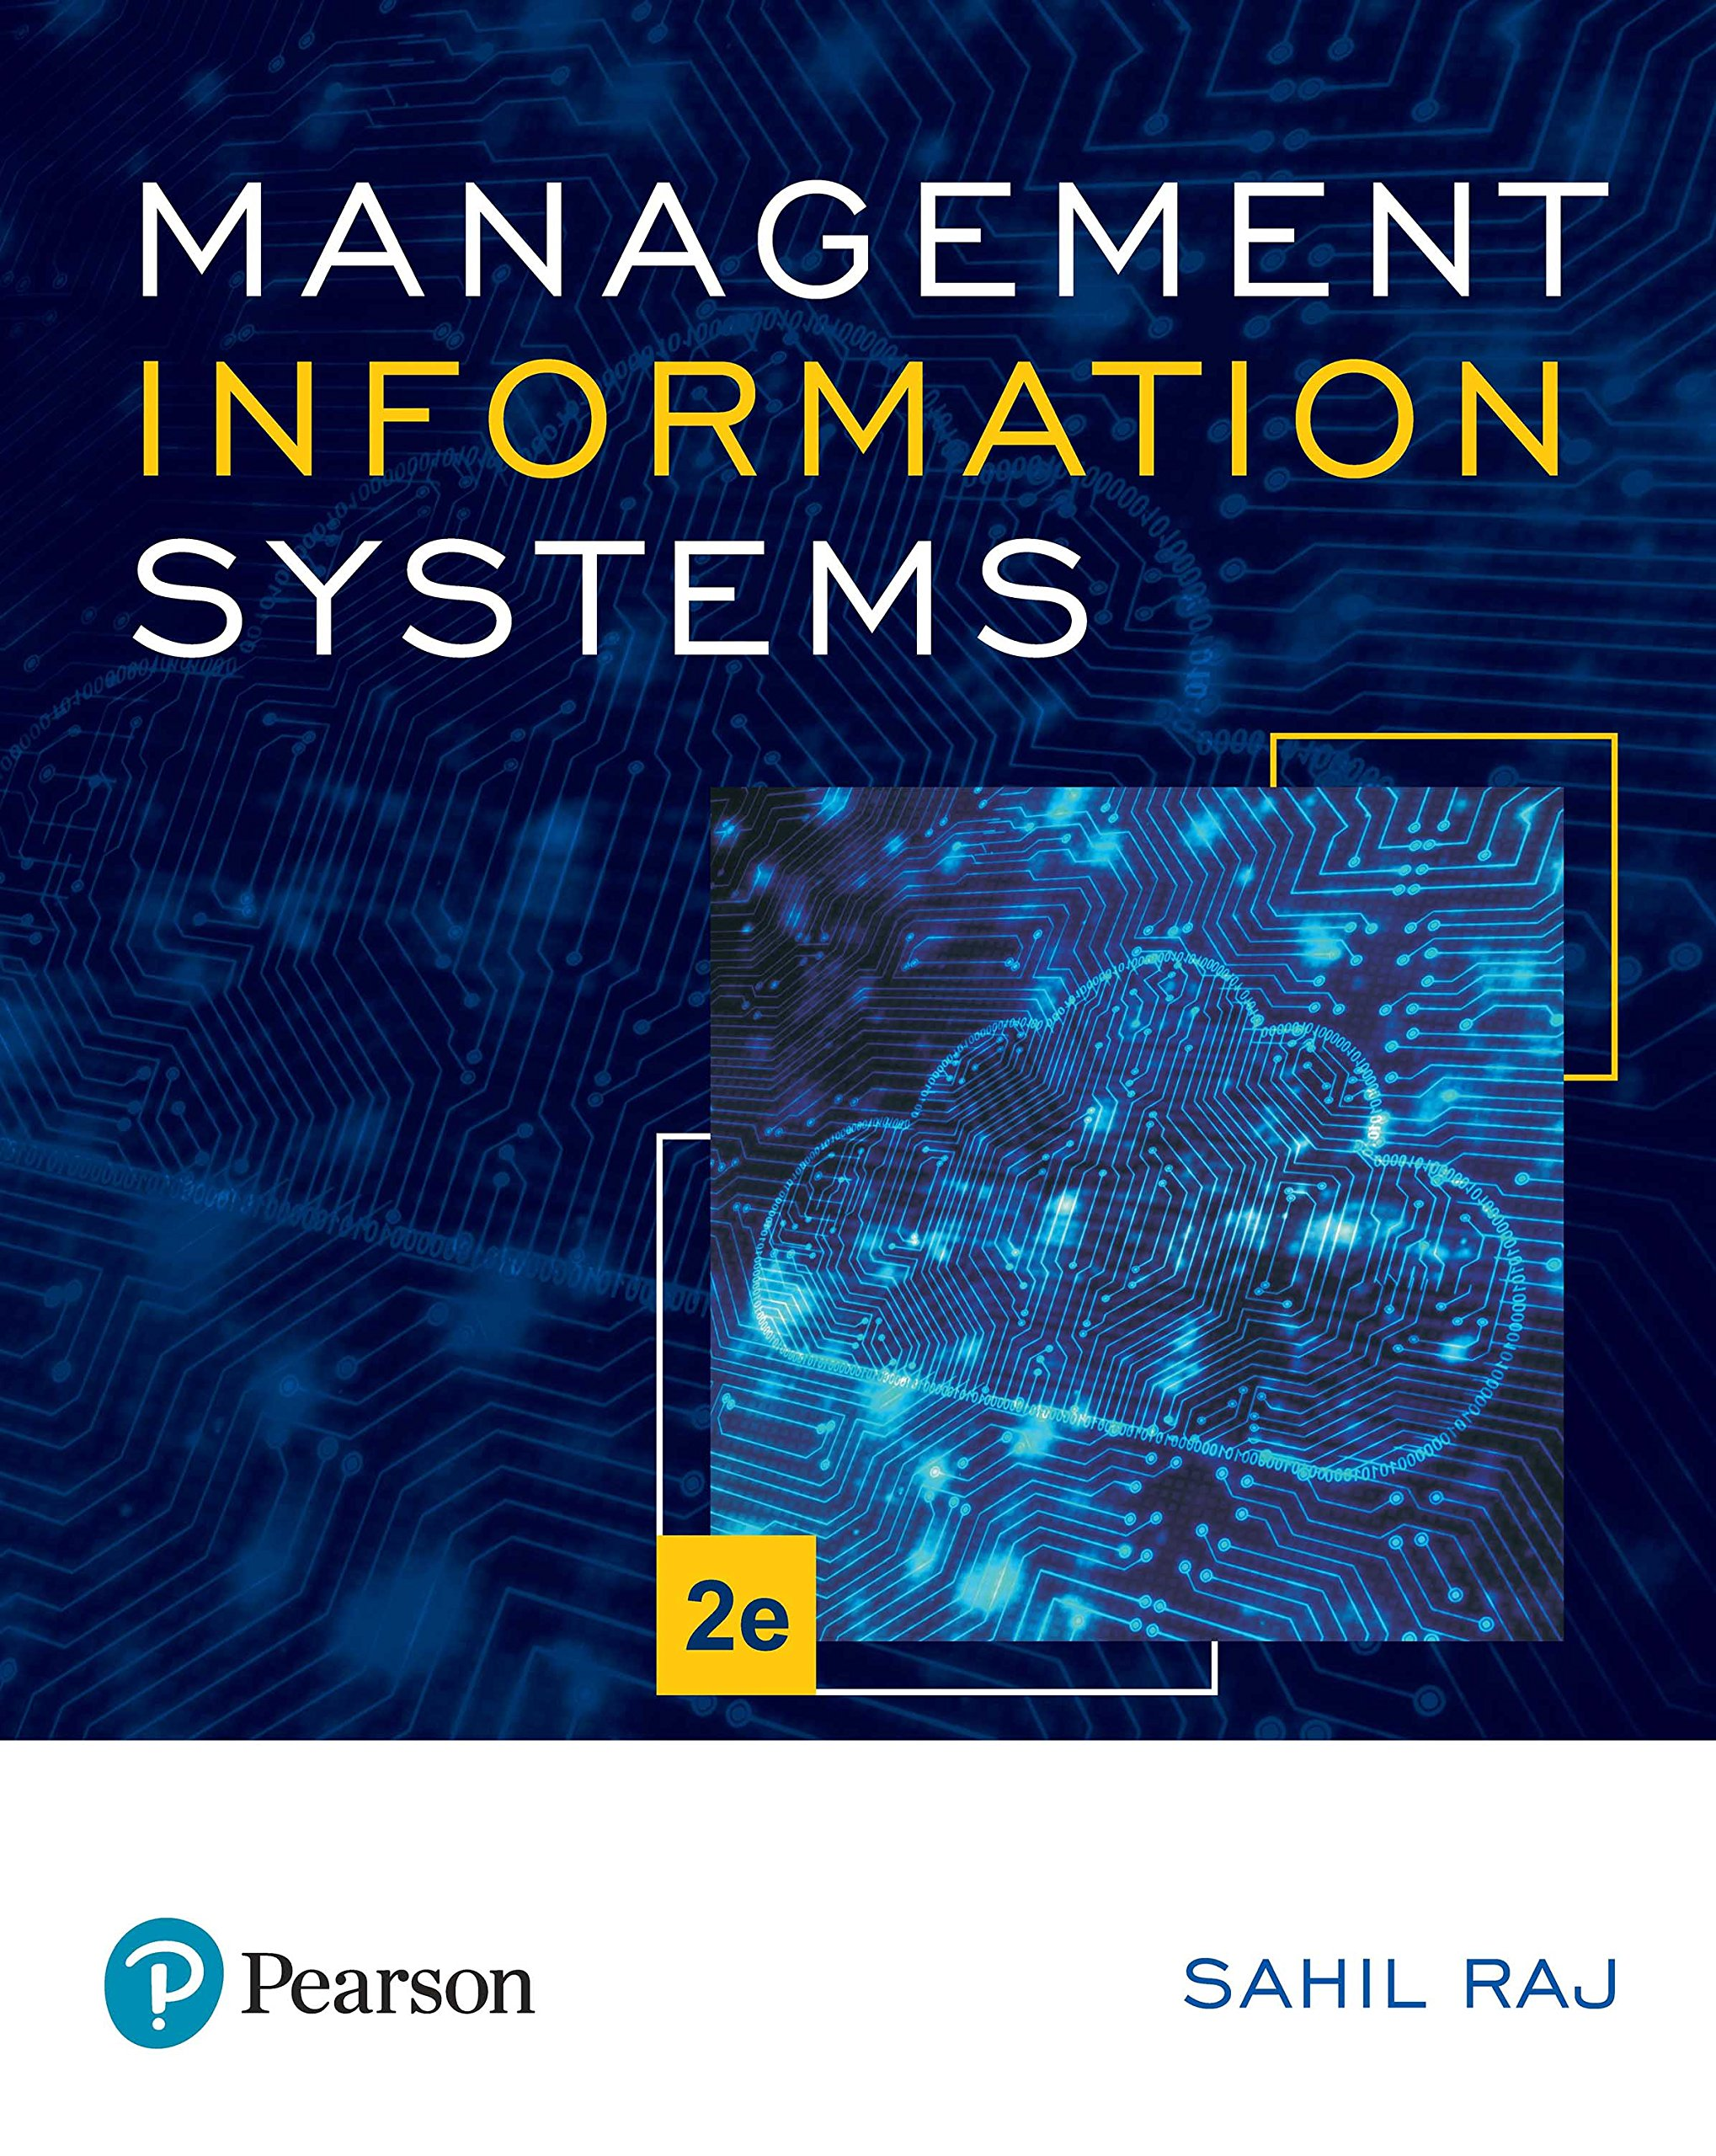 Buy Management Information System by Pearson Book Online at